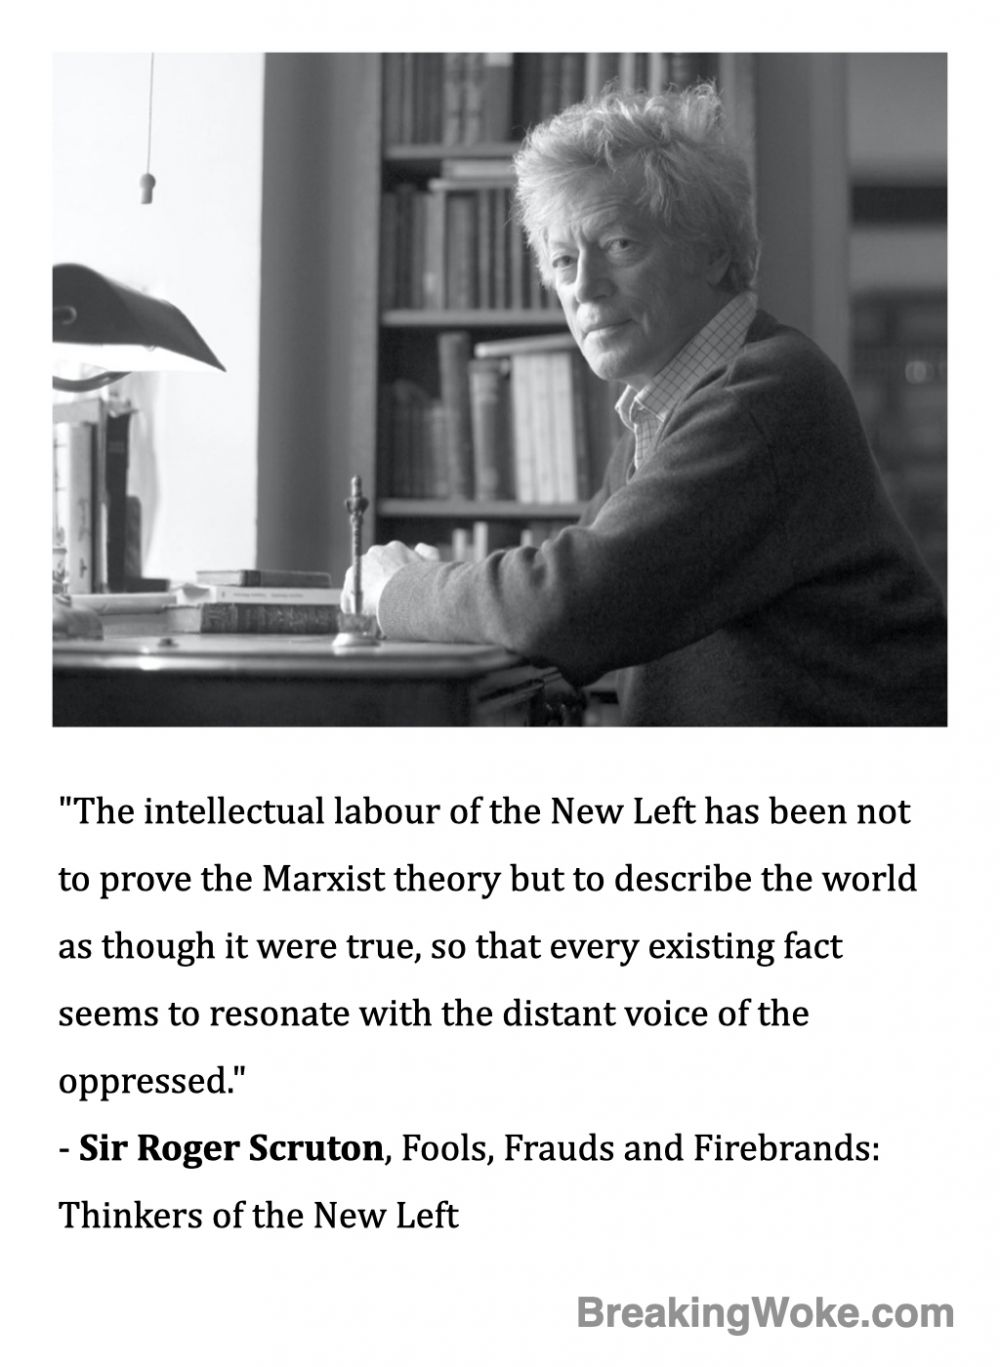 Roger Scruton - Fools, Frauds and Firebrands